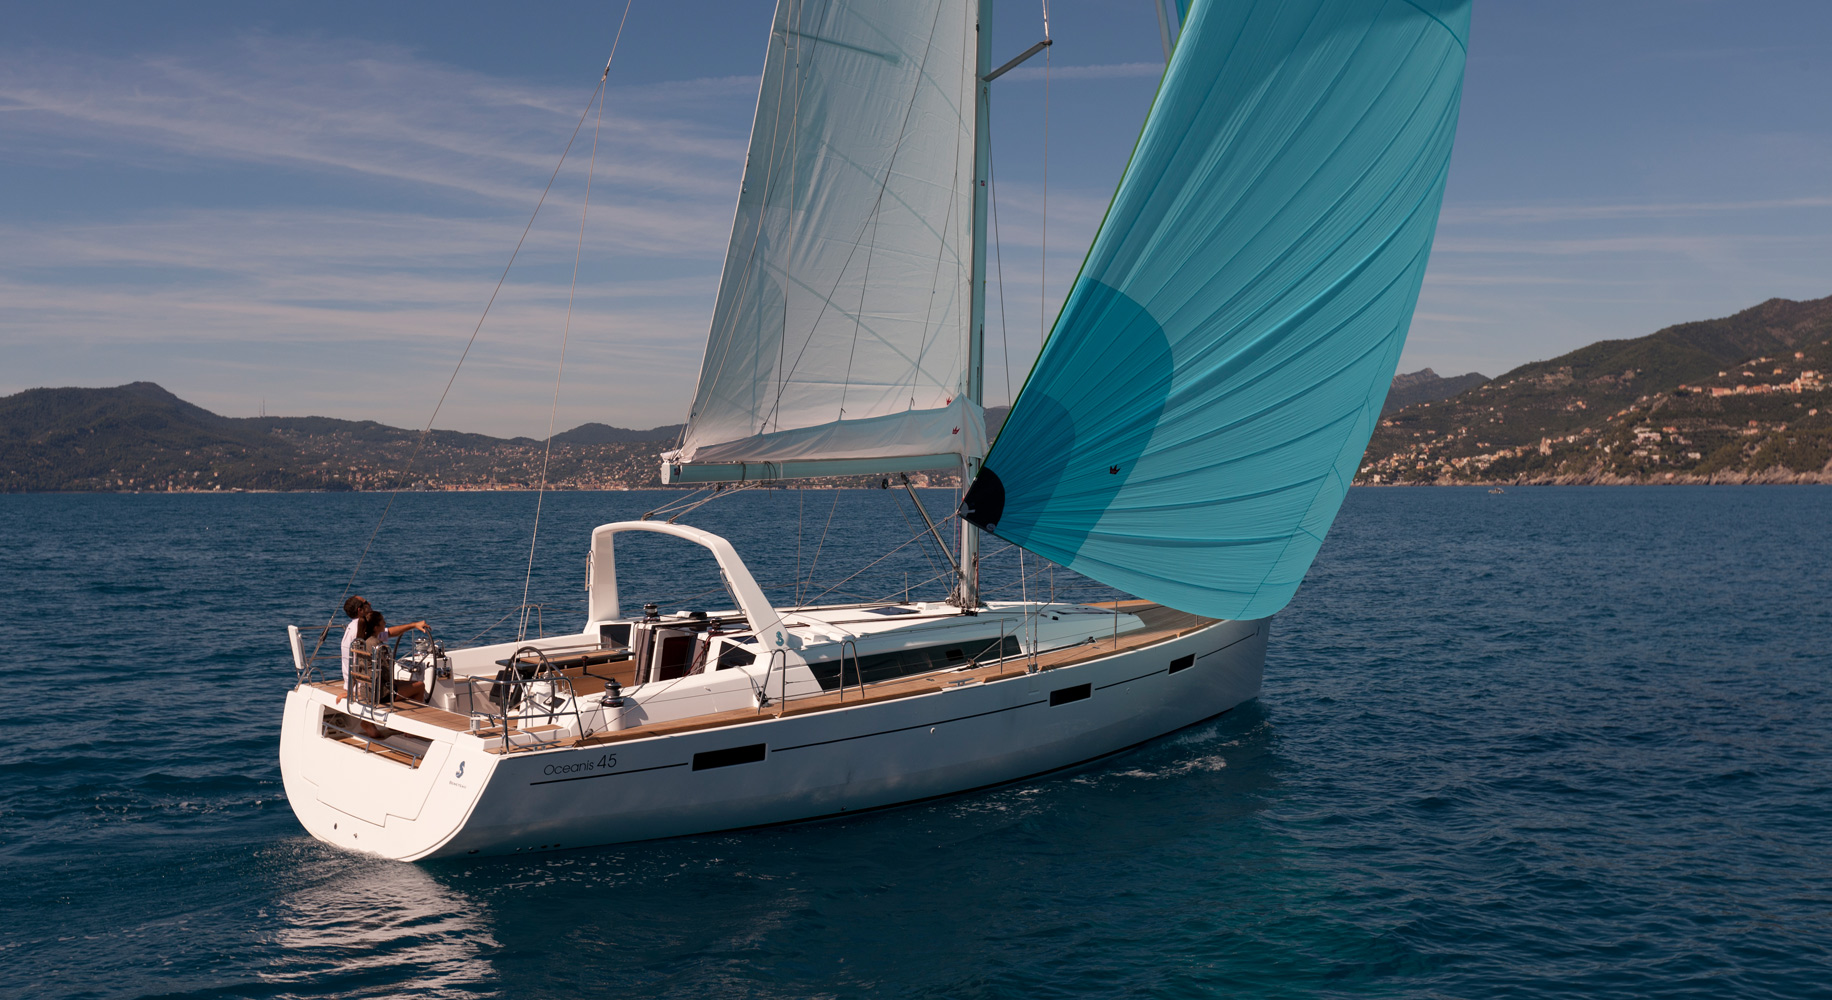 French Riviera, cannes, south of France boat rental